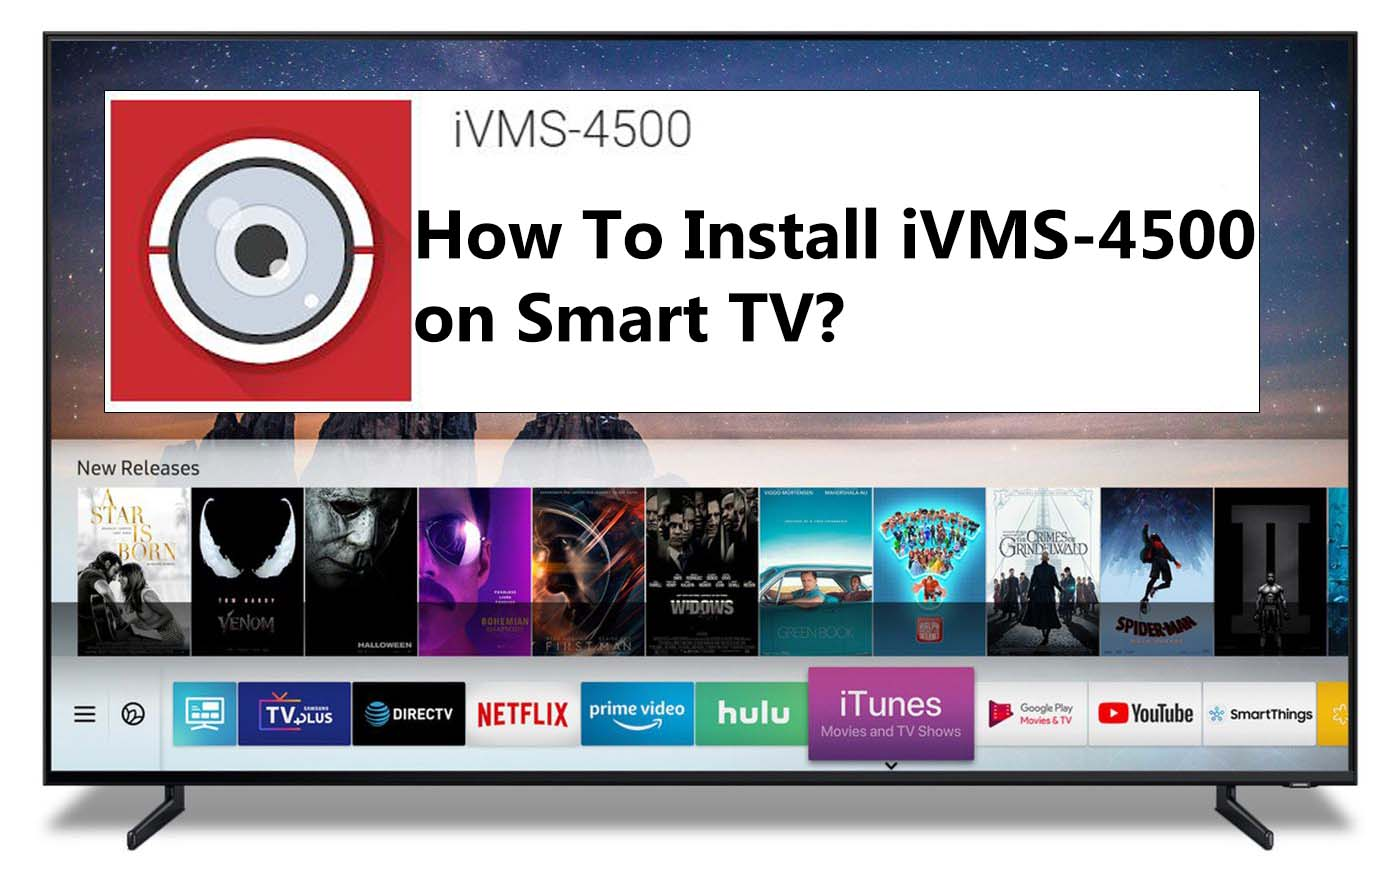 How To Install iVMS-4500 on Smart TV